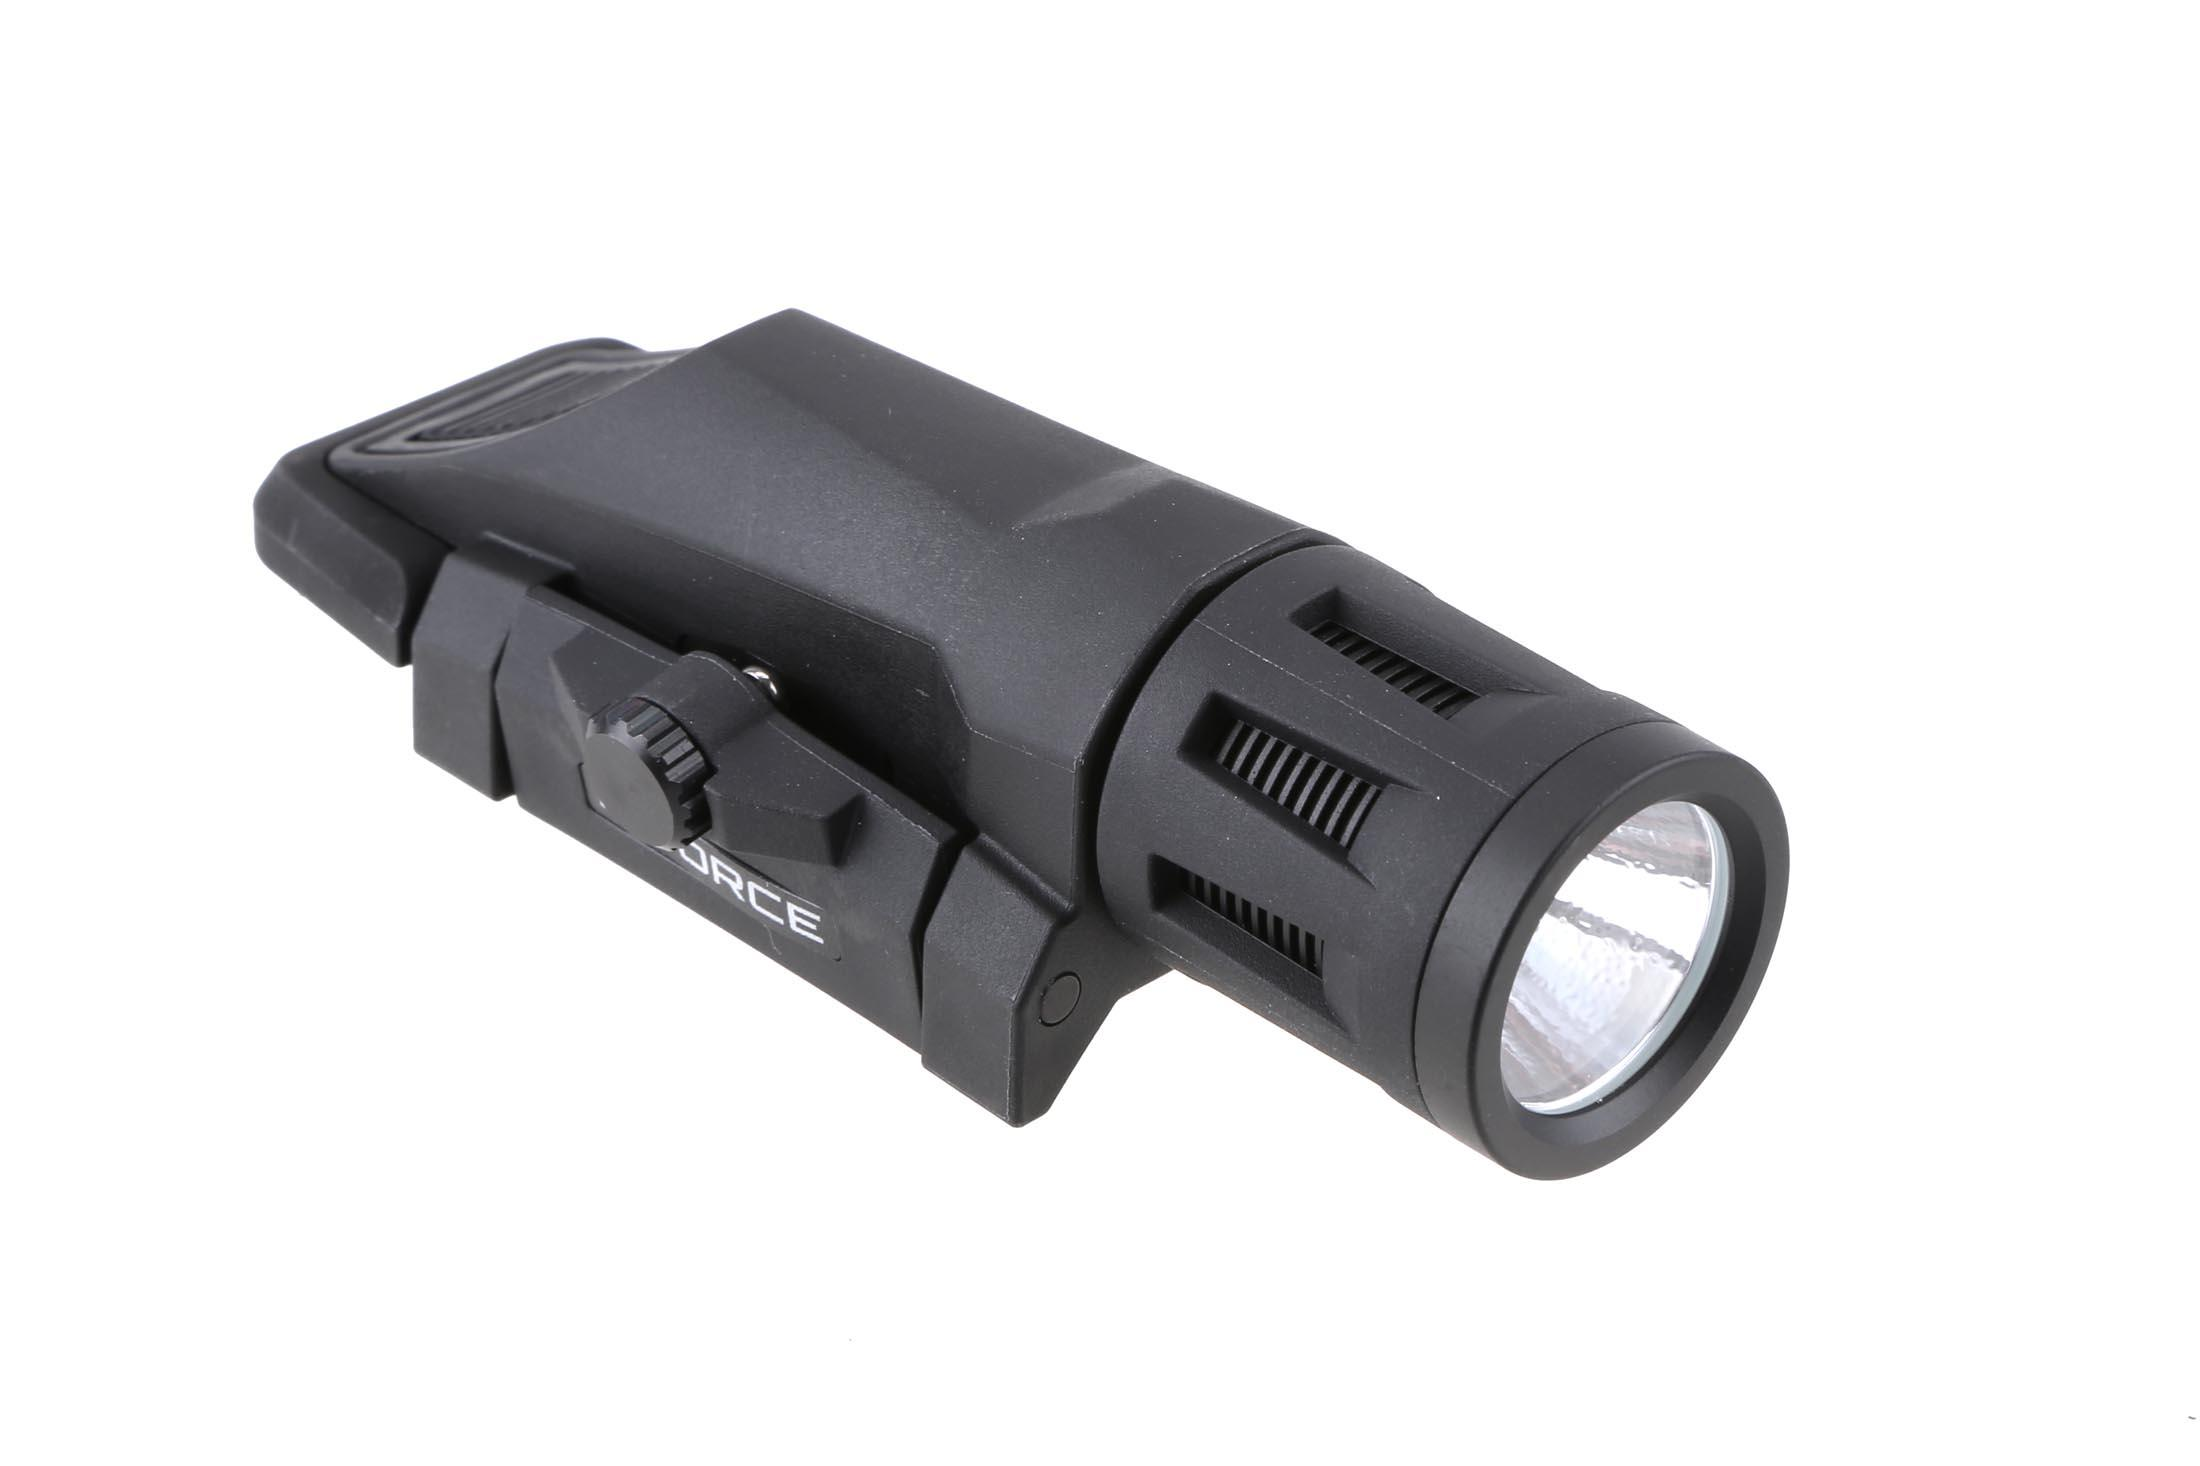 The Inforce WML is a lightweight and durable polymer weapon mounted light